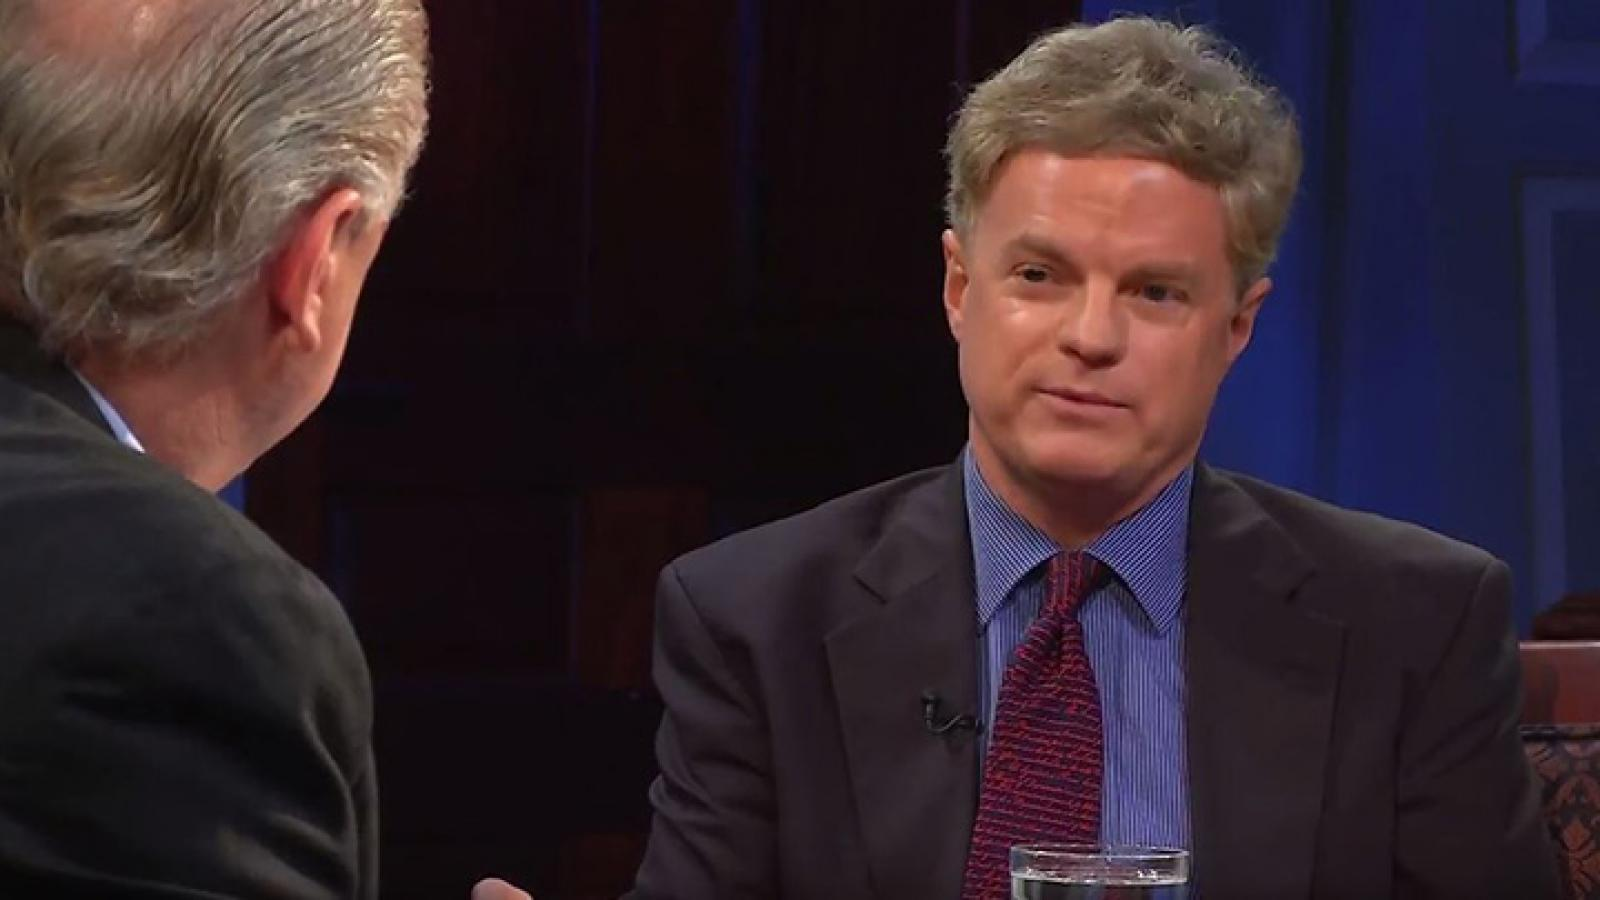 Former domestic policy advisors John Bridgeland and Melody Barnes on how government can be limited but still solve problems